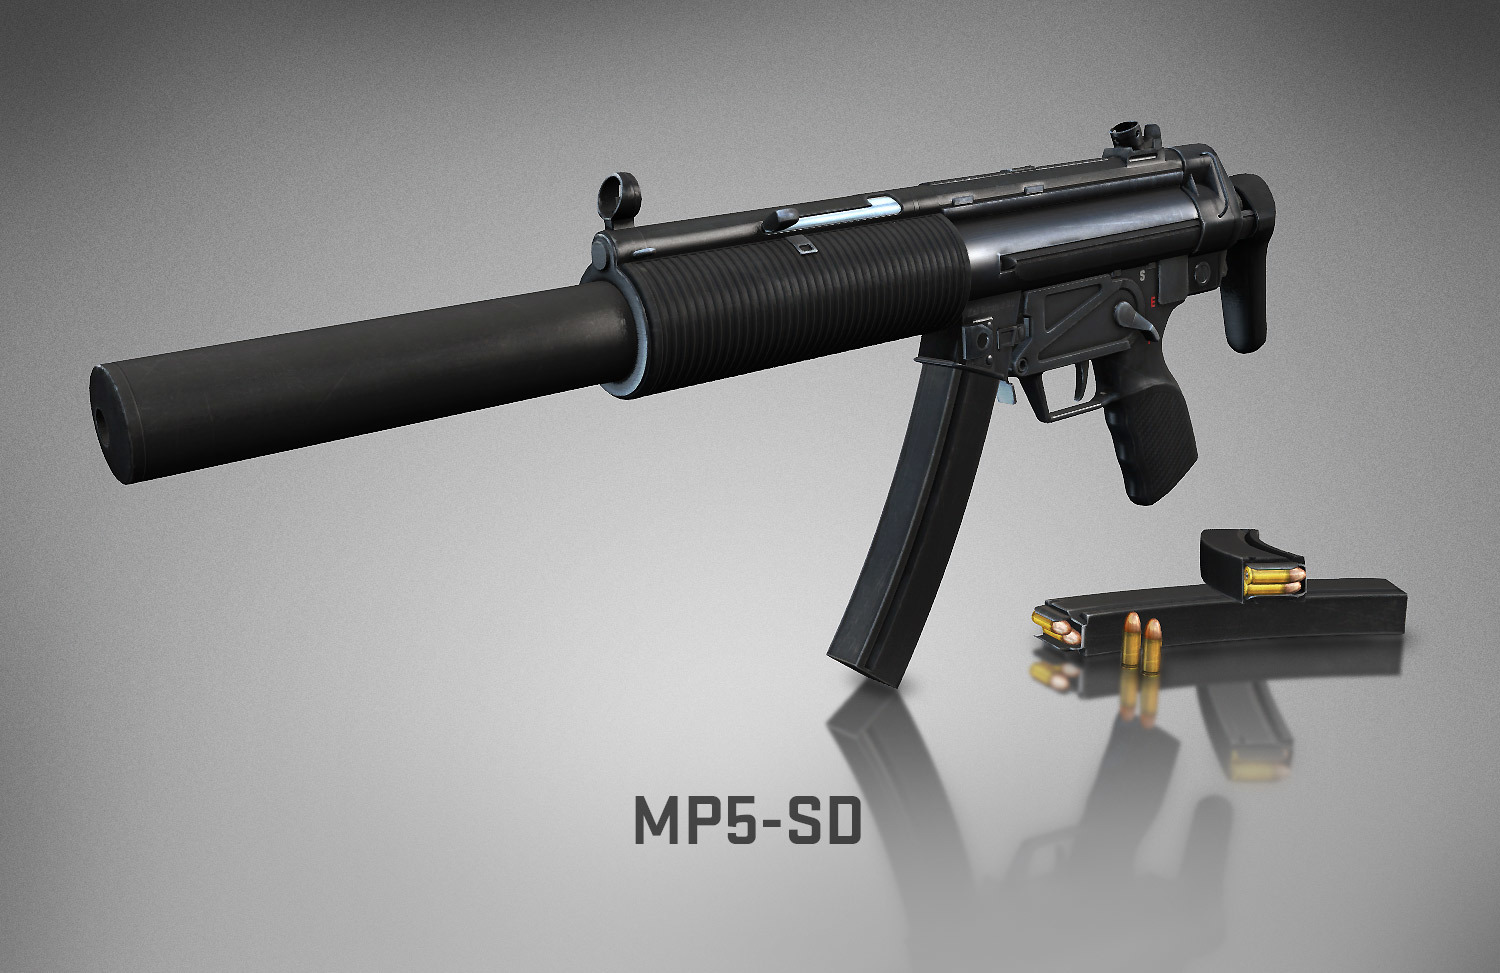 The MP5-SD lands in CS:GO - Counter-Strike: Global Offensive